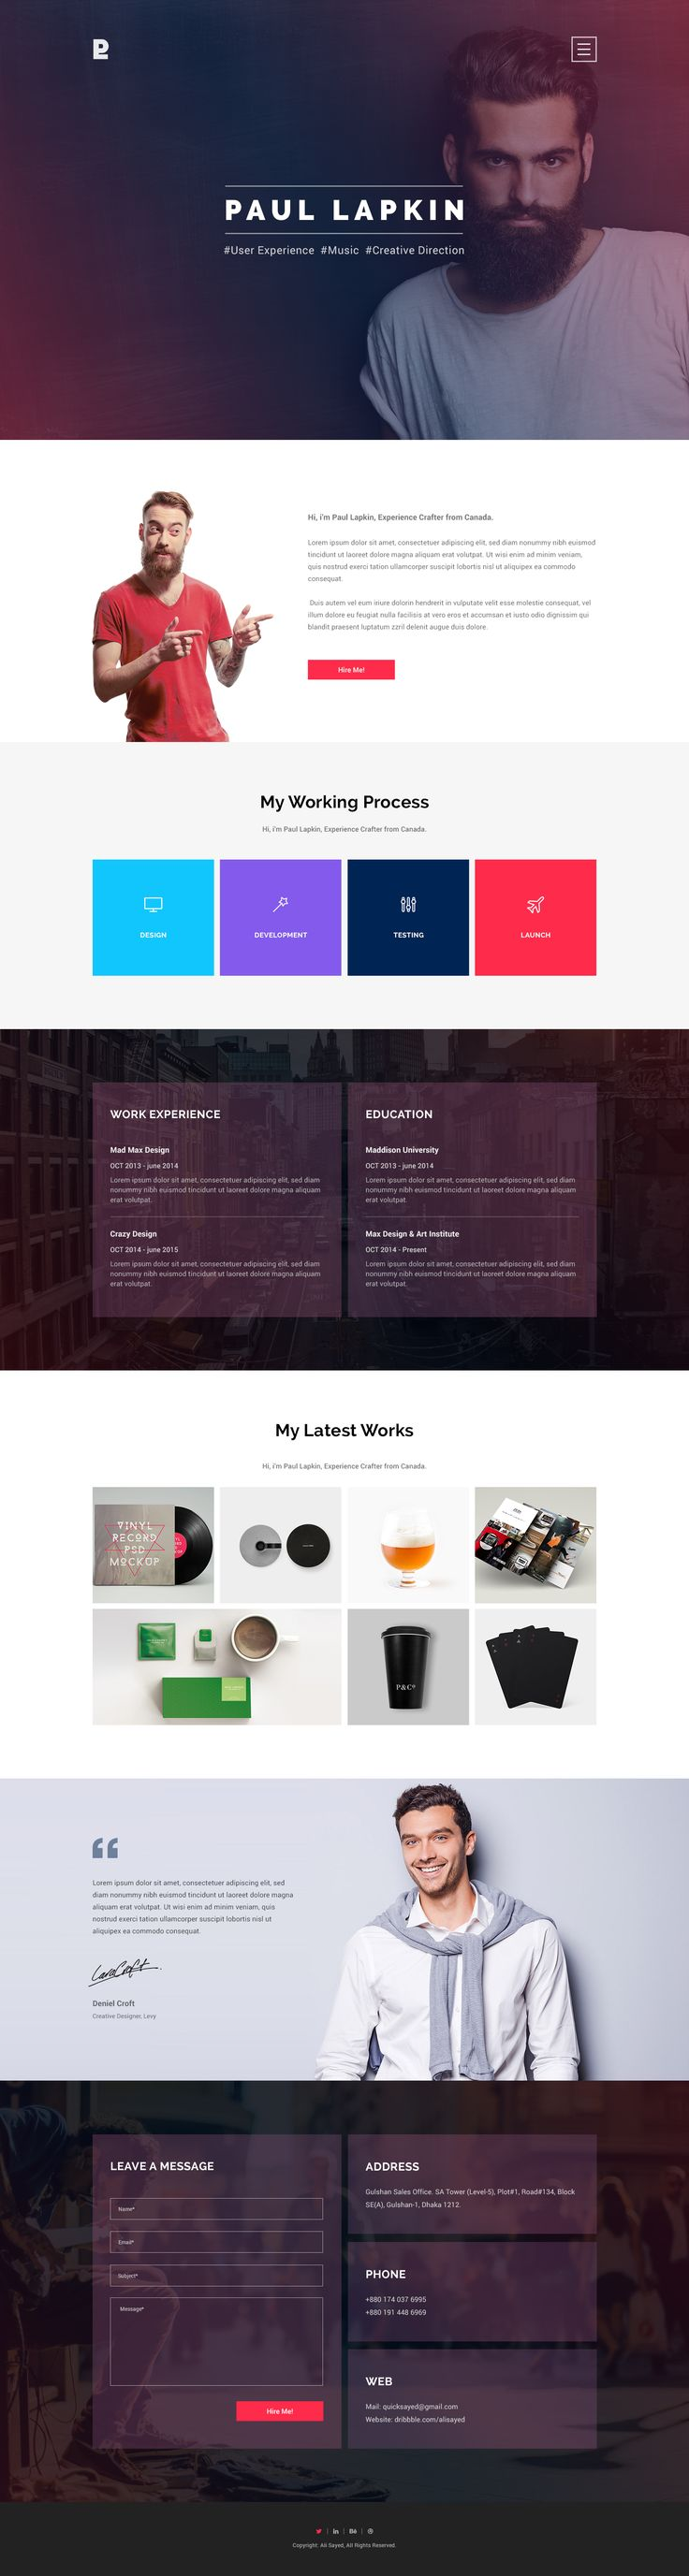 Gorgeous #free website template - Photoshop Freebies